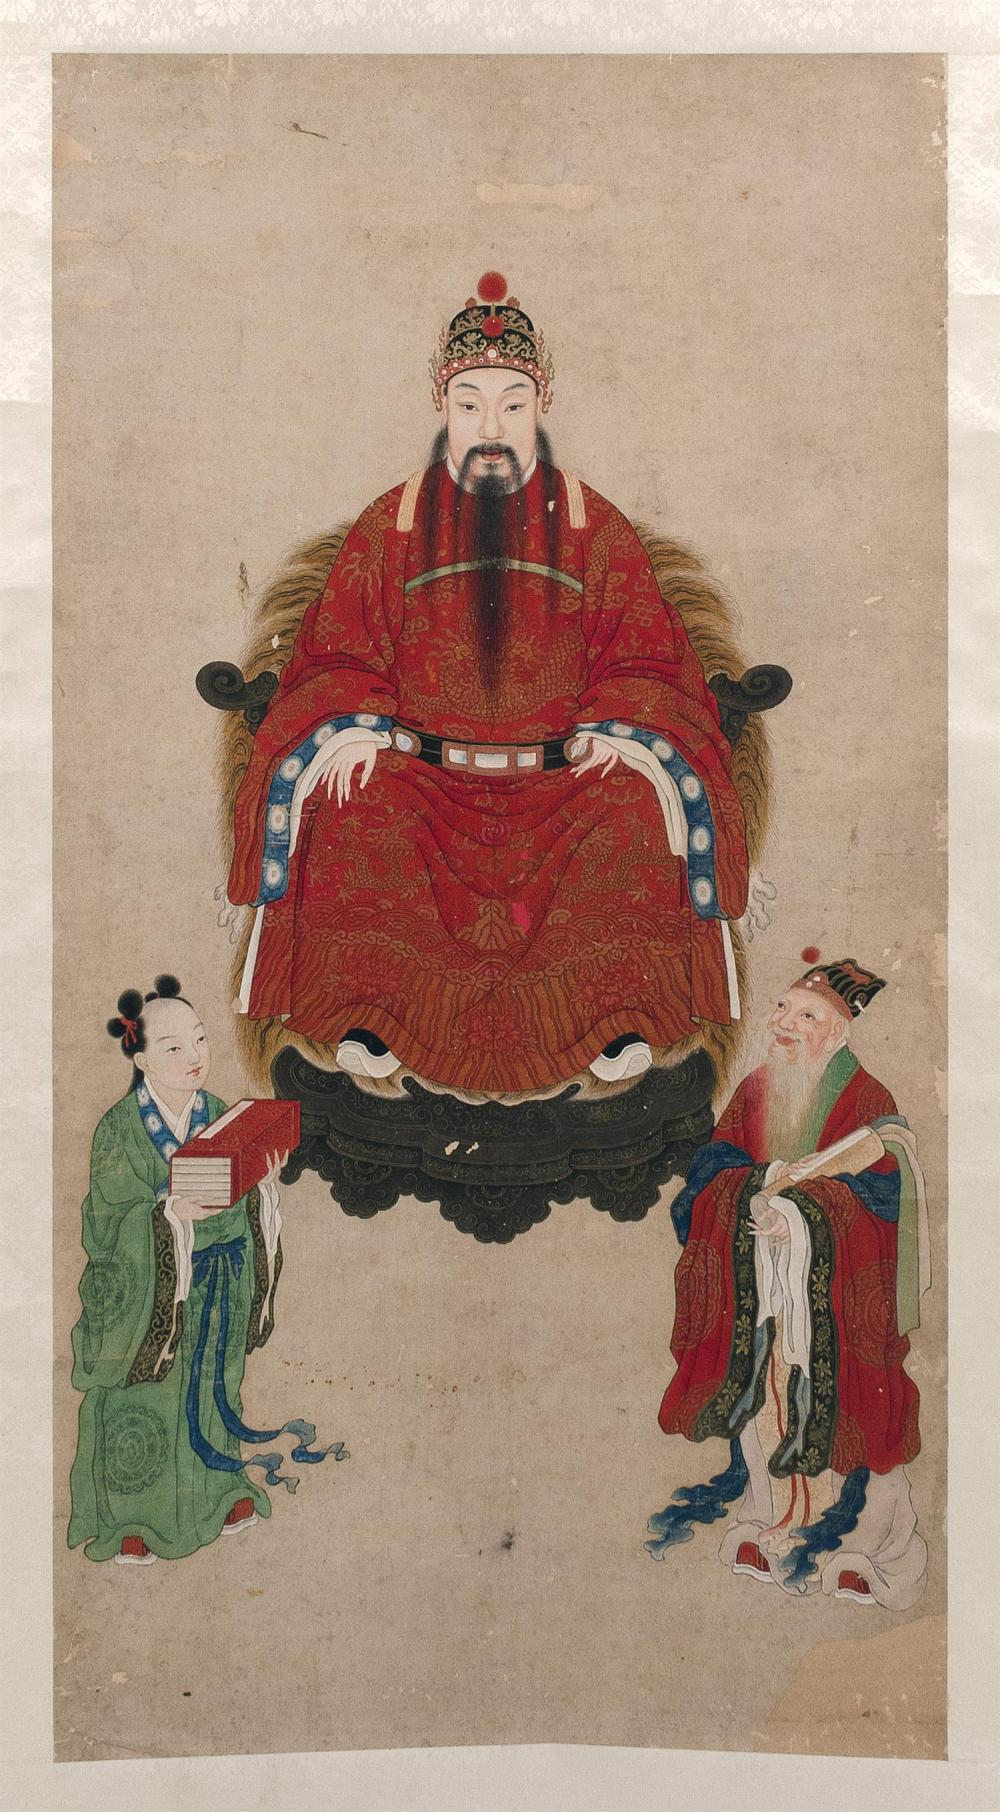 "CHINESE ANCESTRAL SCROLL PAINTING ON PAPER Depicting an imperial figure and two attendants. 45"" x 23.5""."